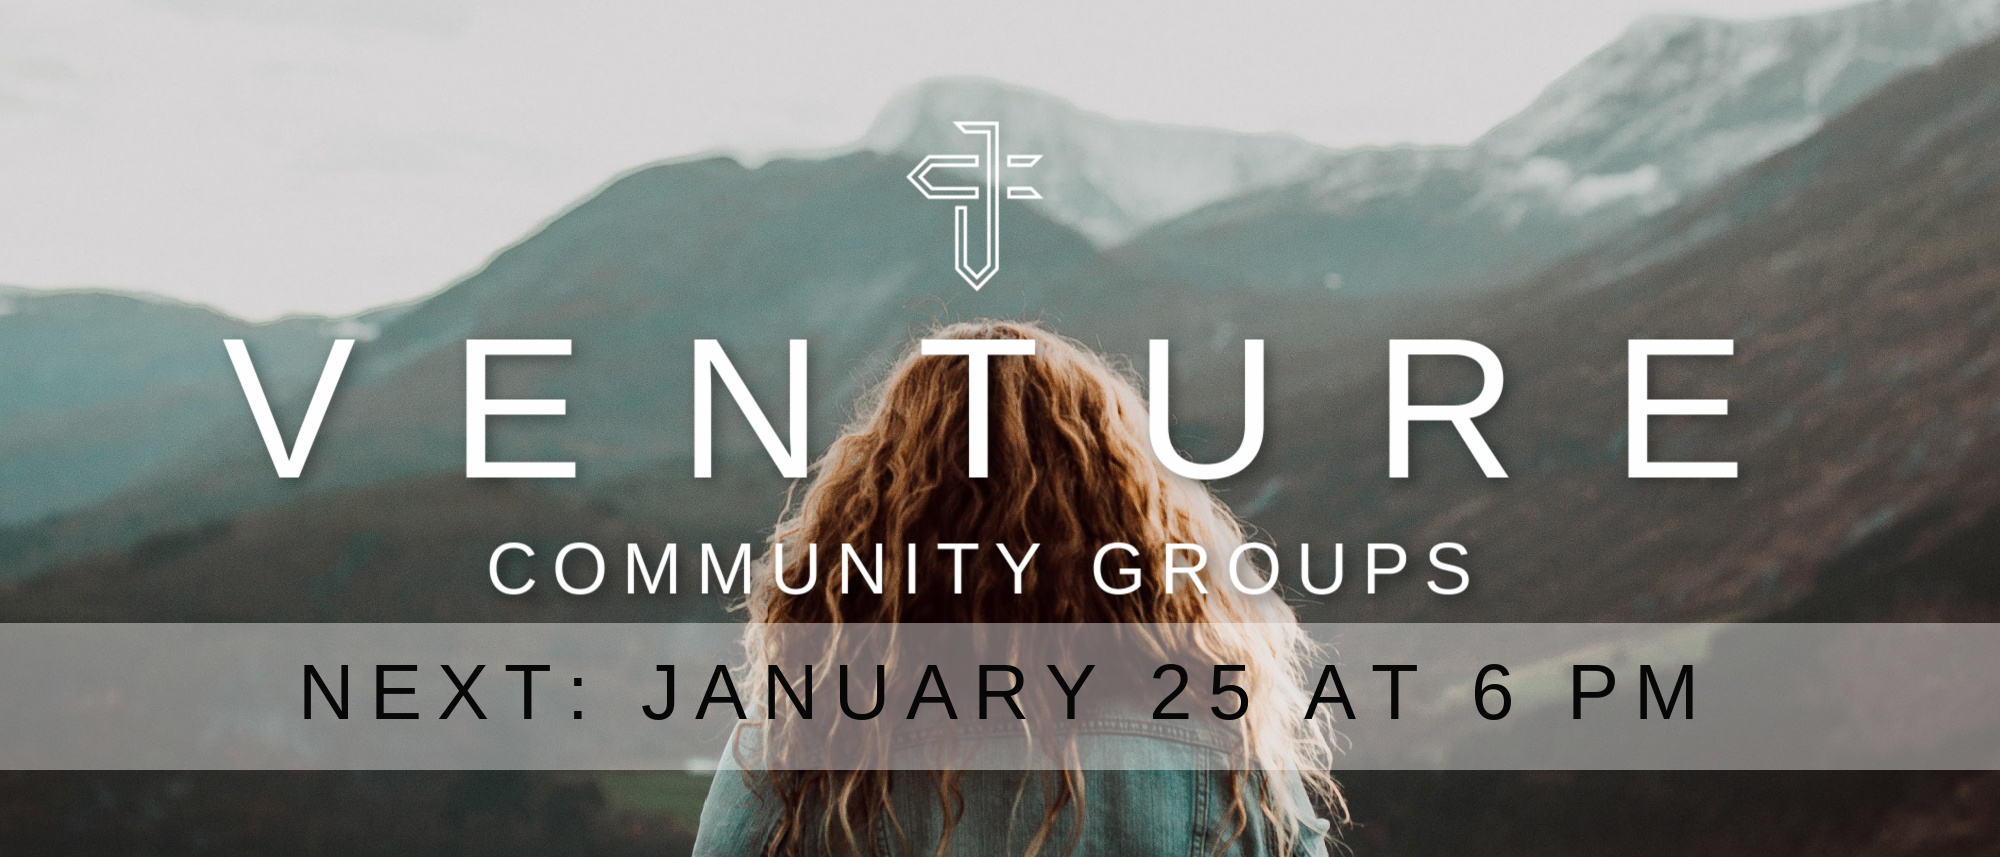 Join us for our monthly Venture Community Group gatherings! Next up: January 25 at 6 PM. Click for more info.